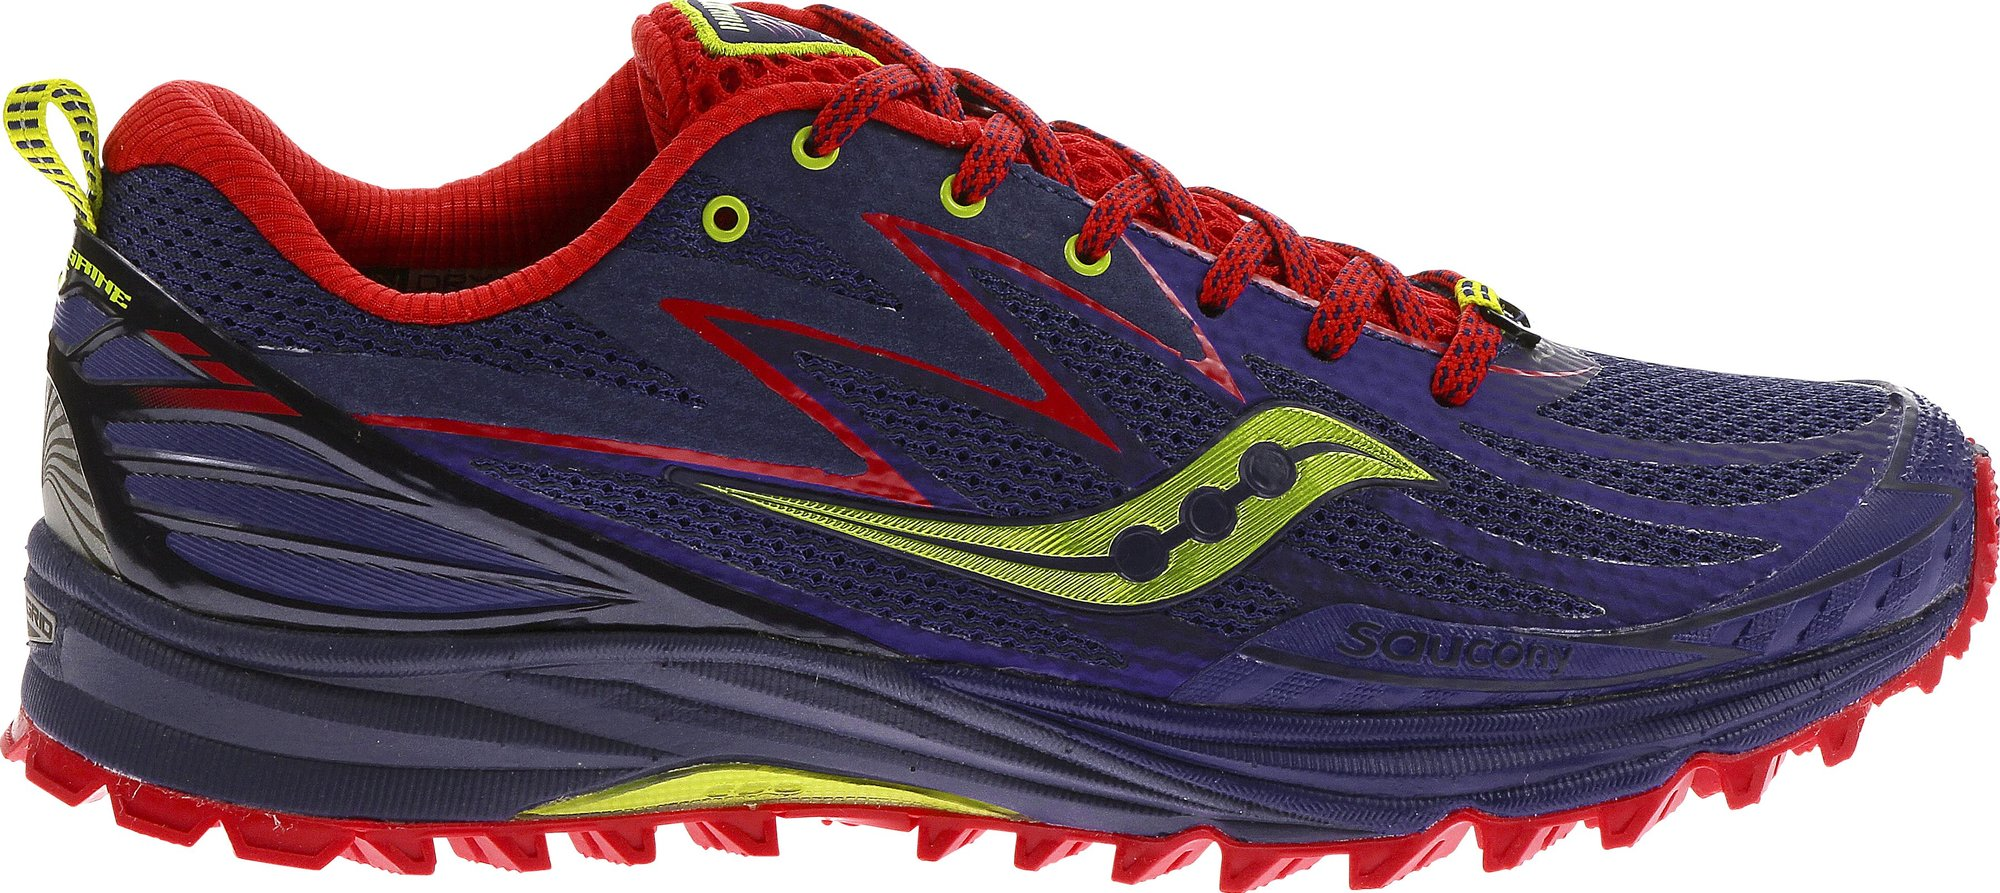 Saucony Lady Peregrine 5 in Purple/Red/Green